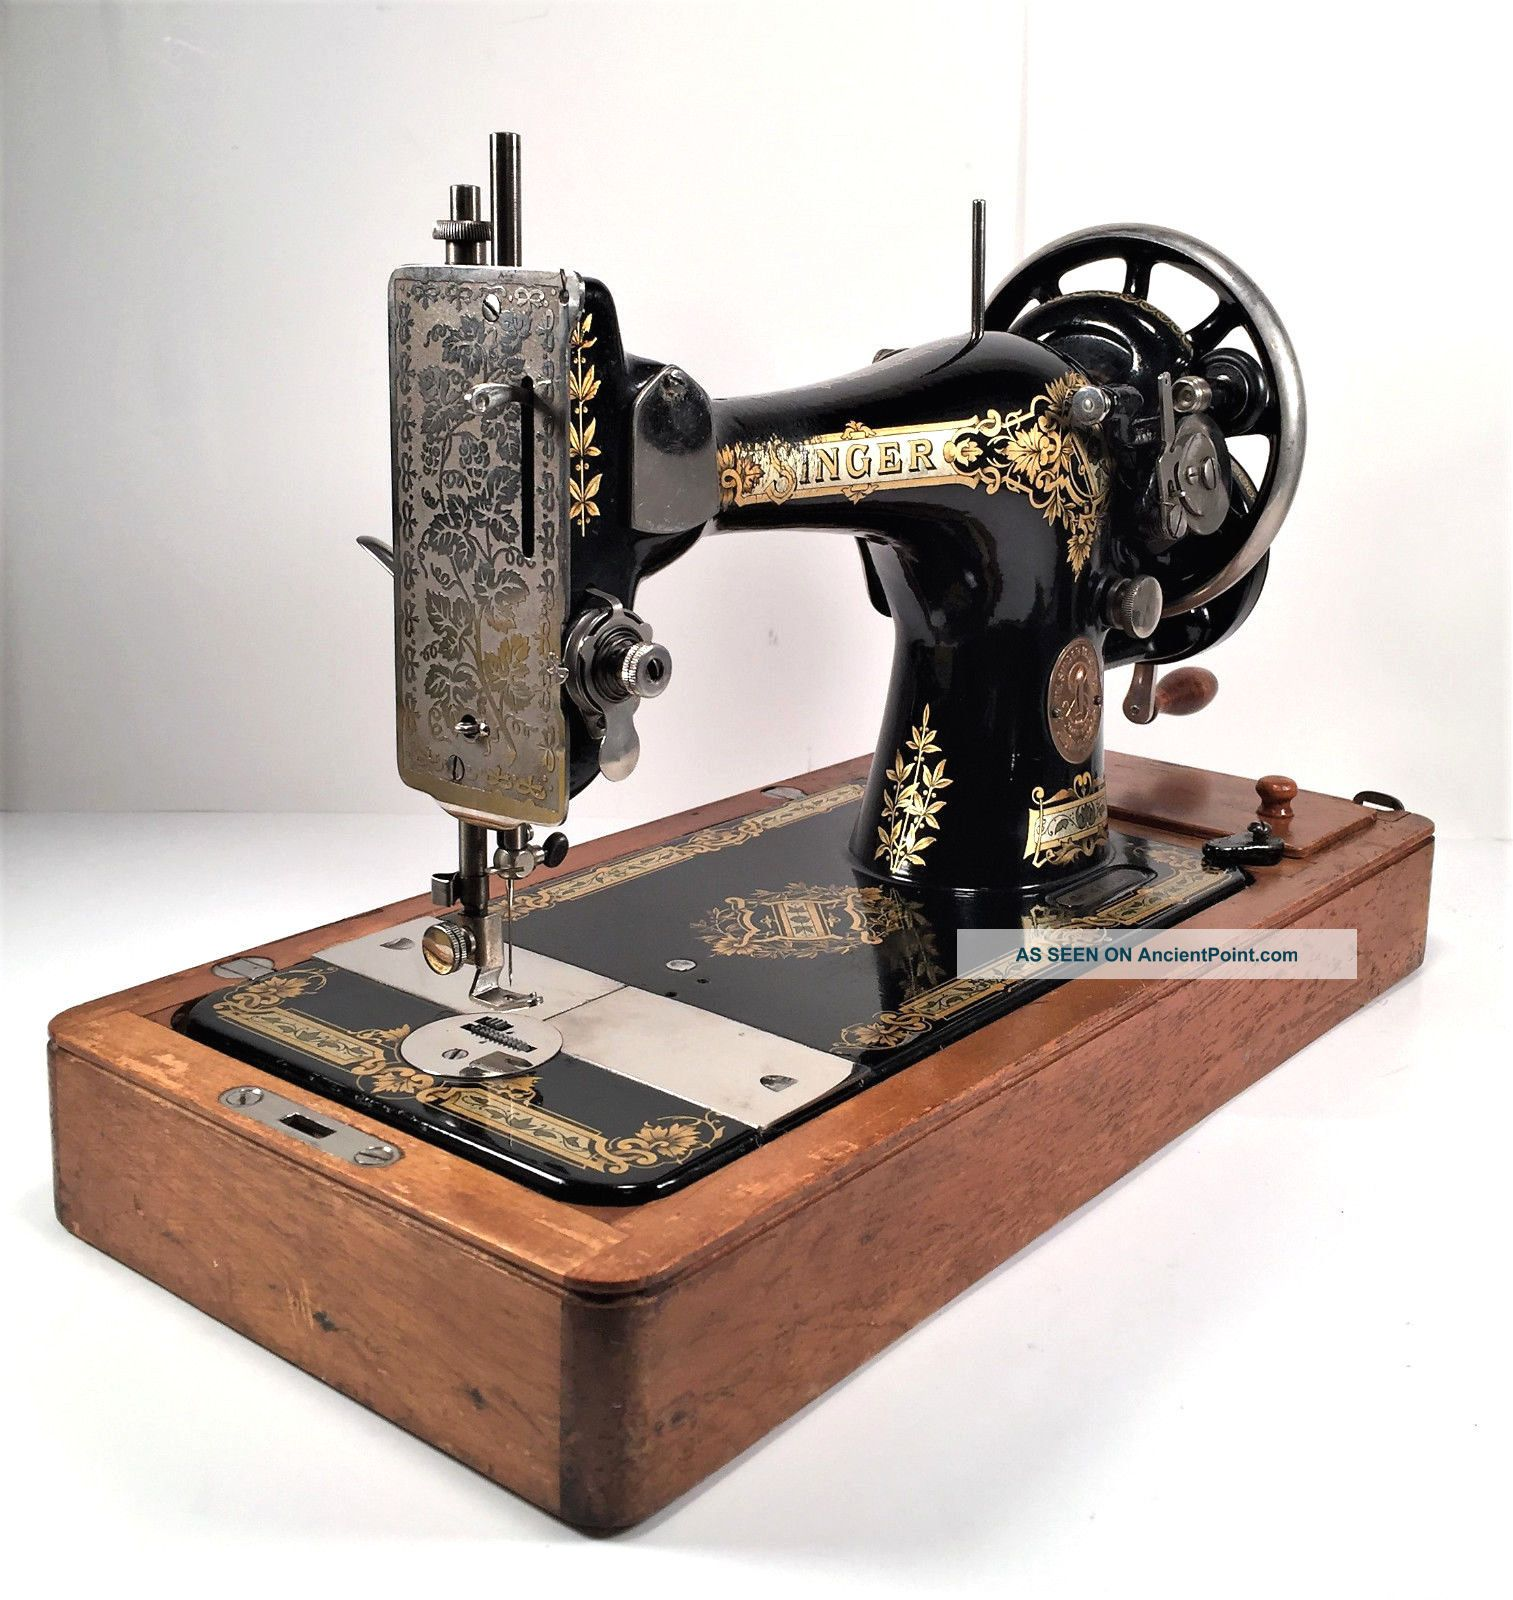 Singer Model 28 Hand Crank Sewing Machine W Bentwood Case Victorian Decals 1918 See more Singer 20u Mechanical Sewing Machine photo